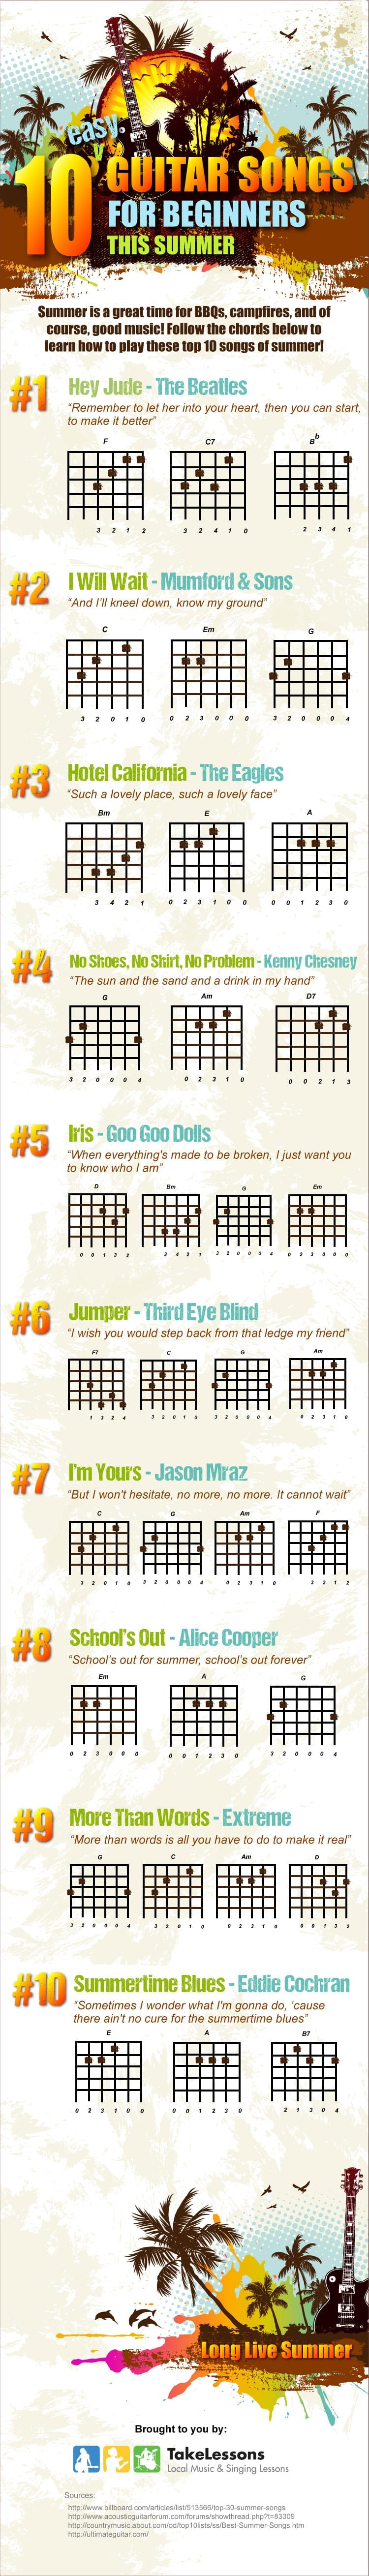 Song For Guitar Beginners : 10 easy guitar songs for beginners this summer infographic ~ Russianpoet.info Haus und Dekorationen